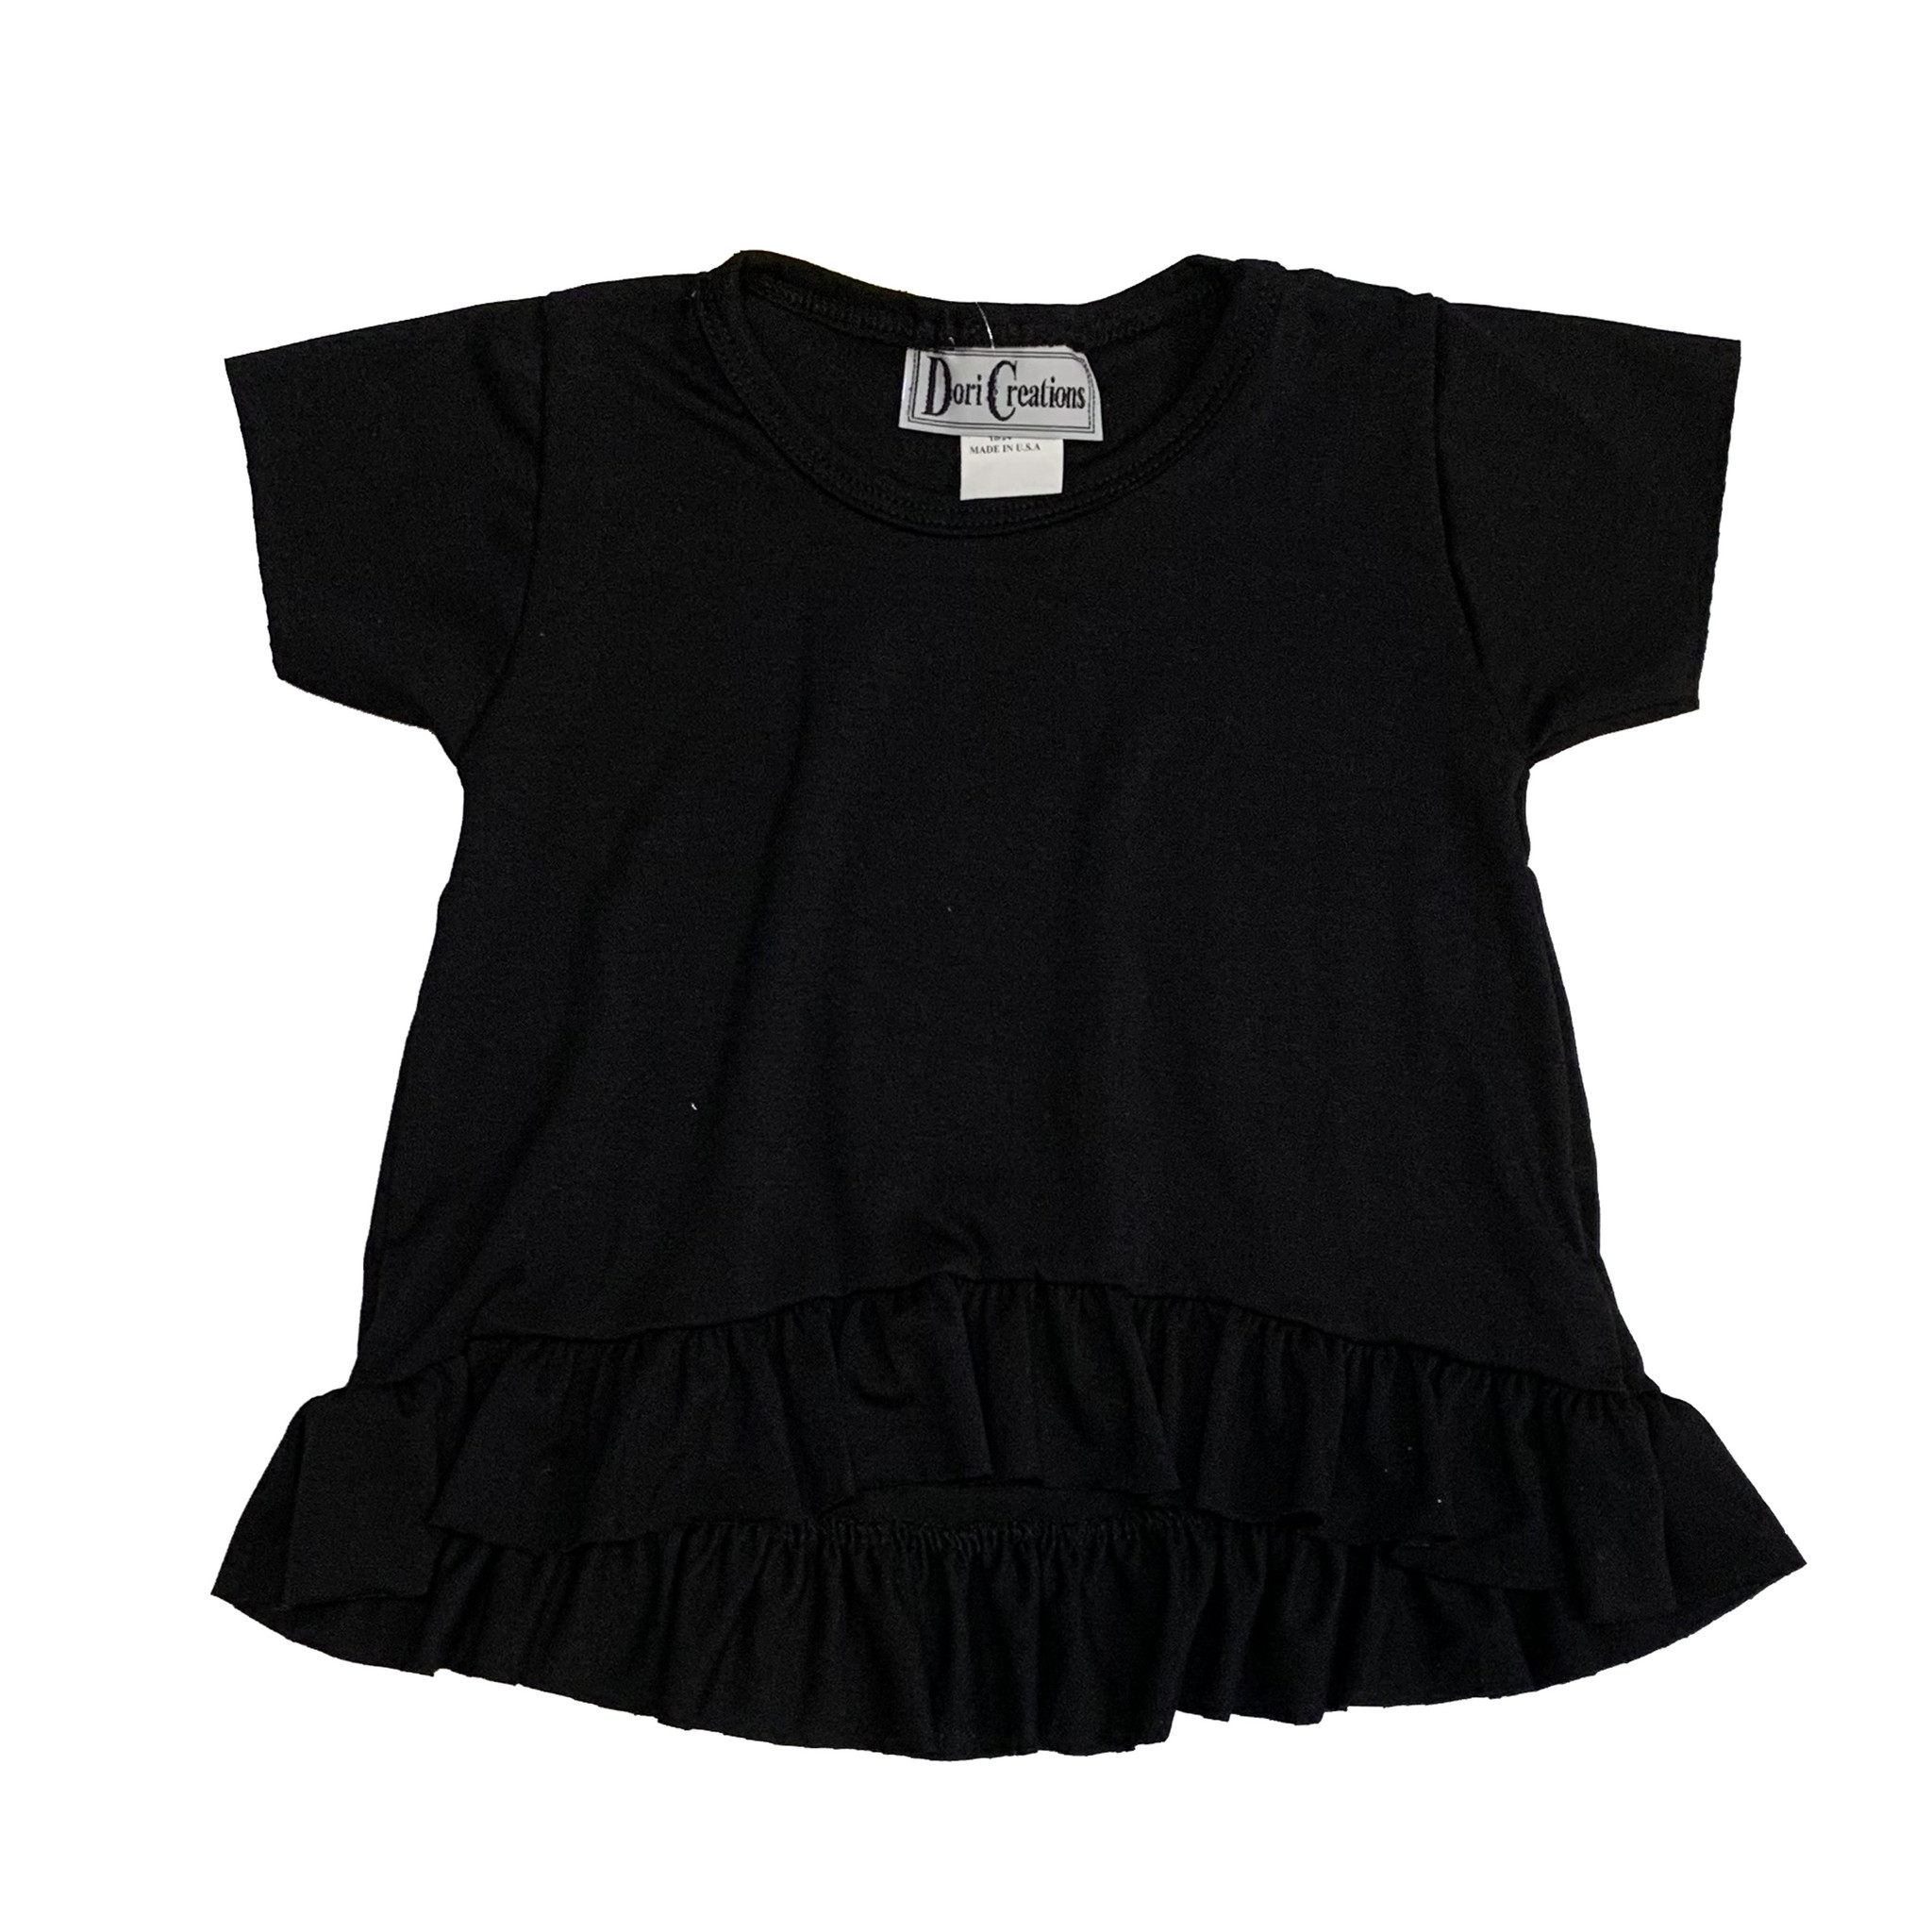 Dori Creations Black Ruffle Tee